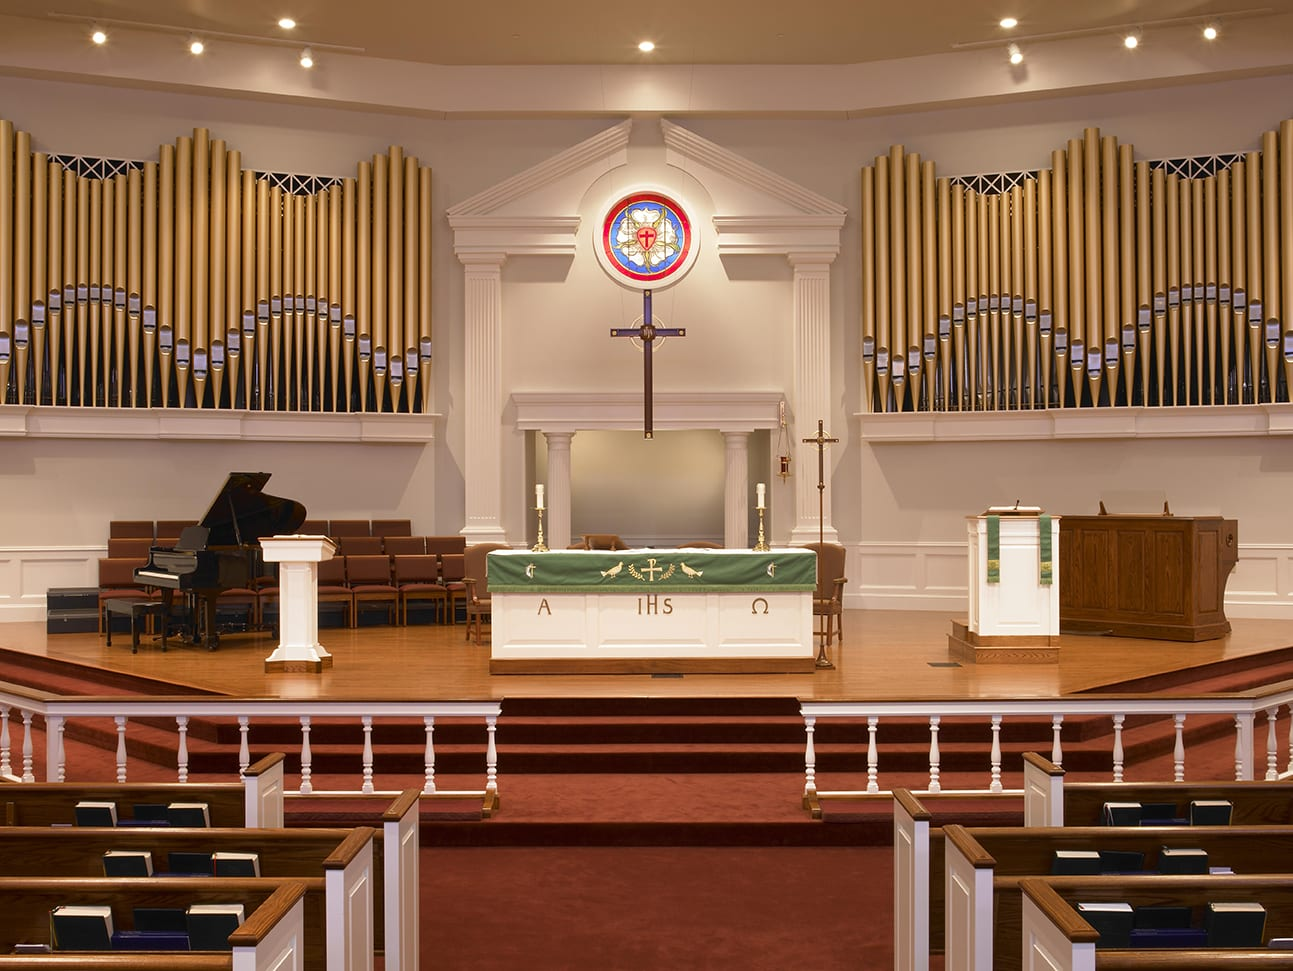 Wide view of Sanctuary